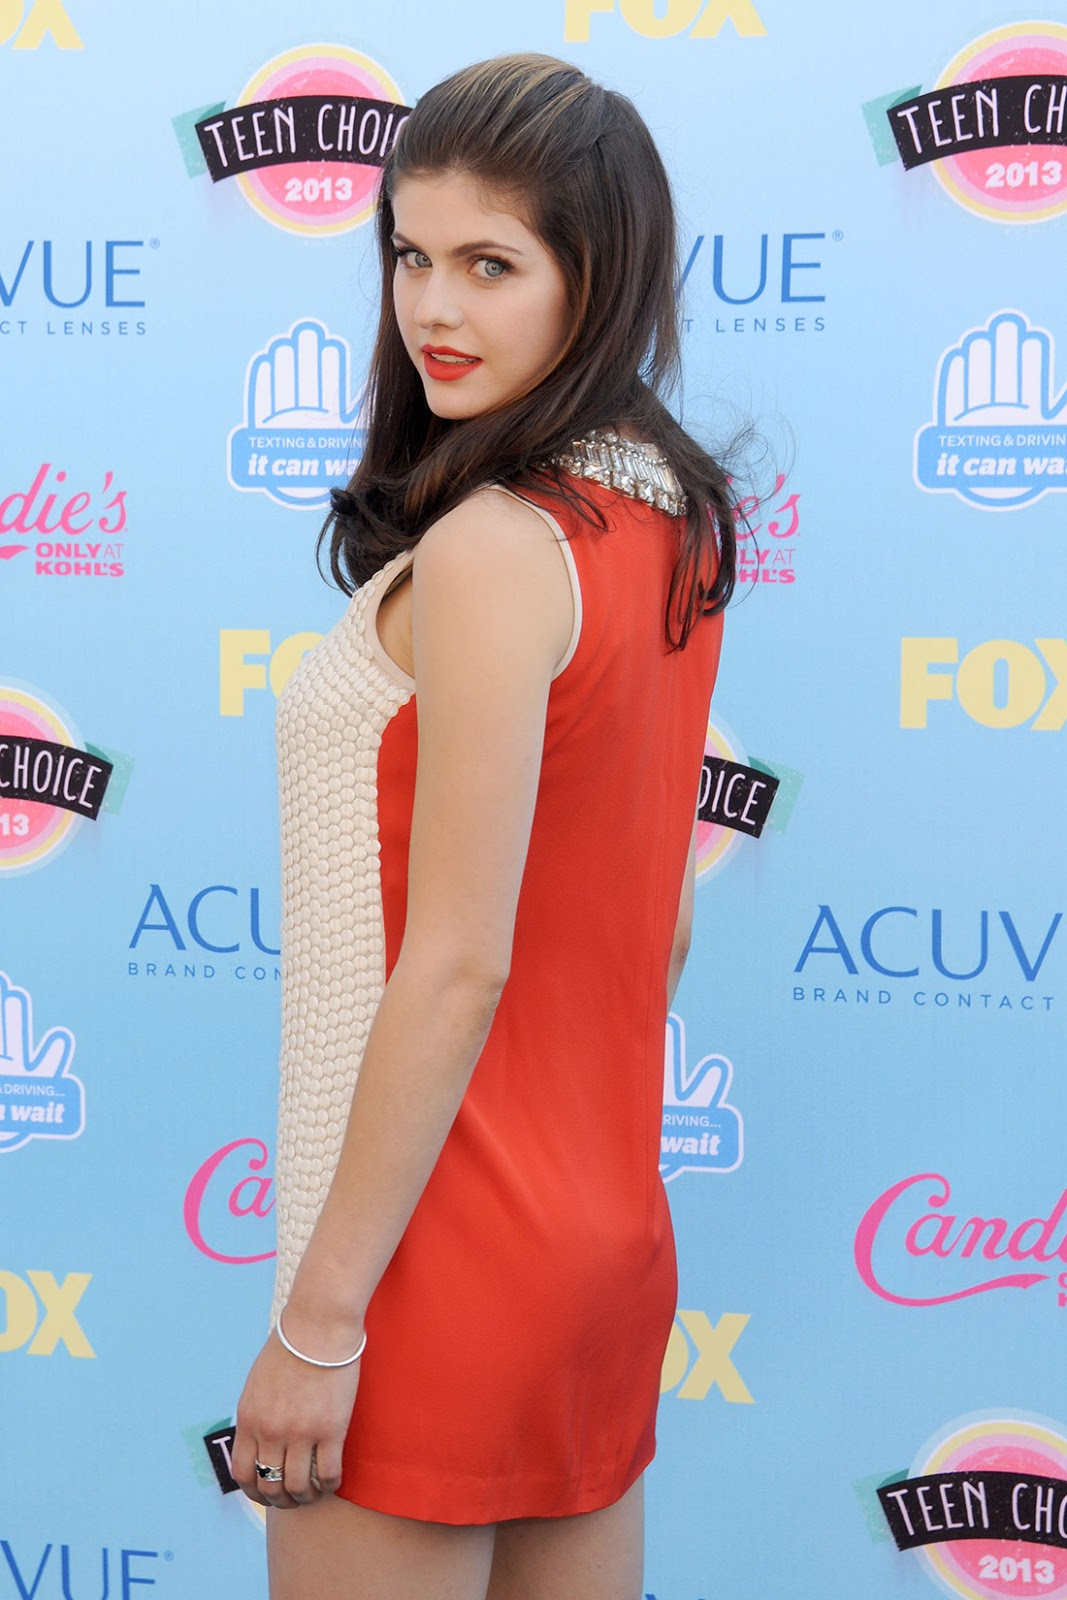 Alexandra Daddario Hot in Teen Choice